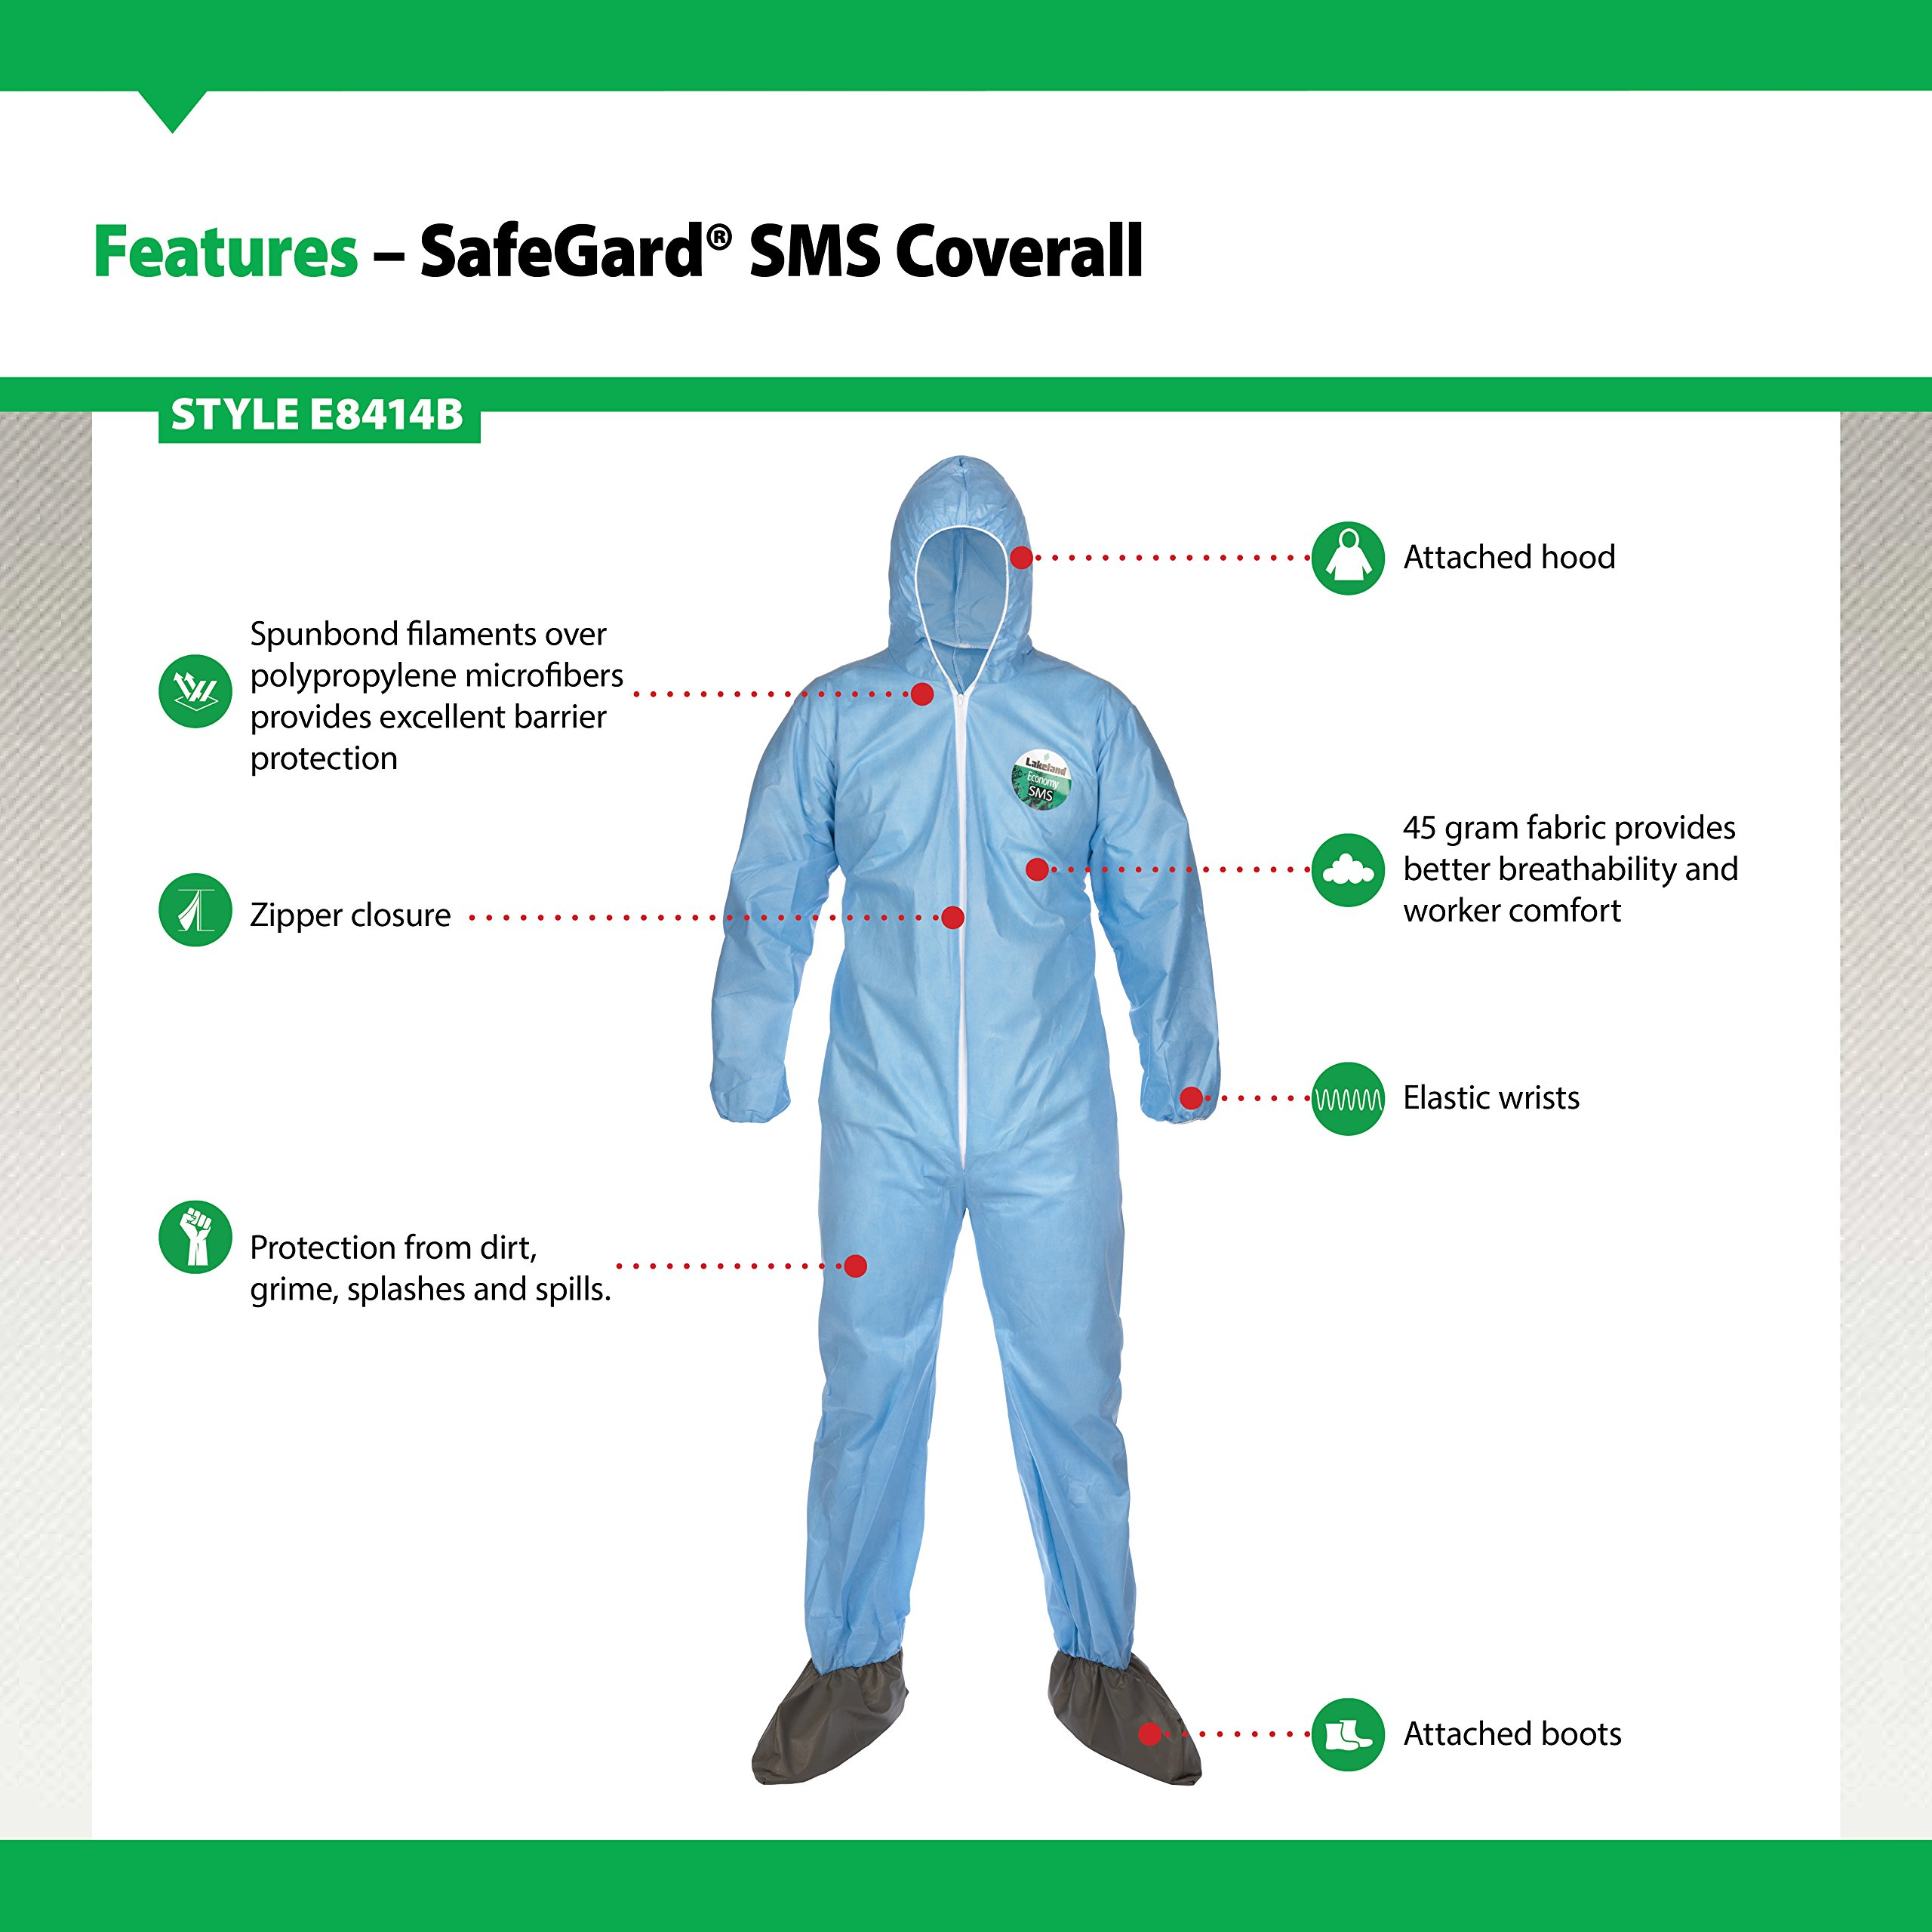 Lakeland SafeGard Economy SMS Coverall with Hood and Boots, Disposable, Elastic Cuff, 2X-Large, Blue (Case of 25) by Lakeland Industries Inc (Image #3)